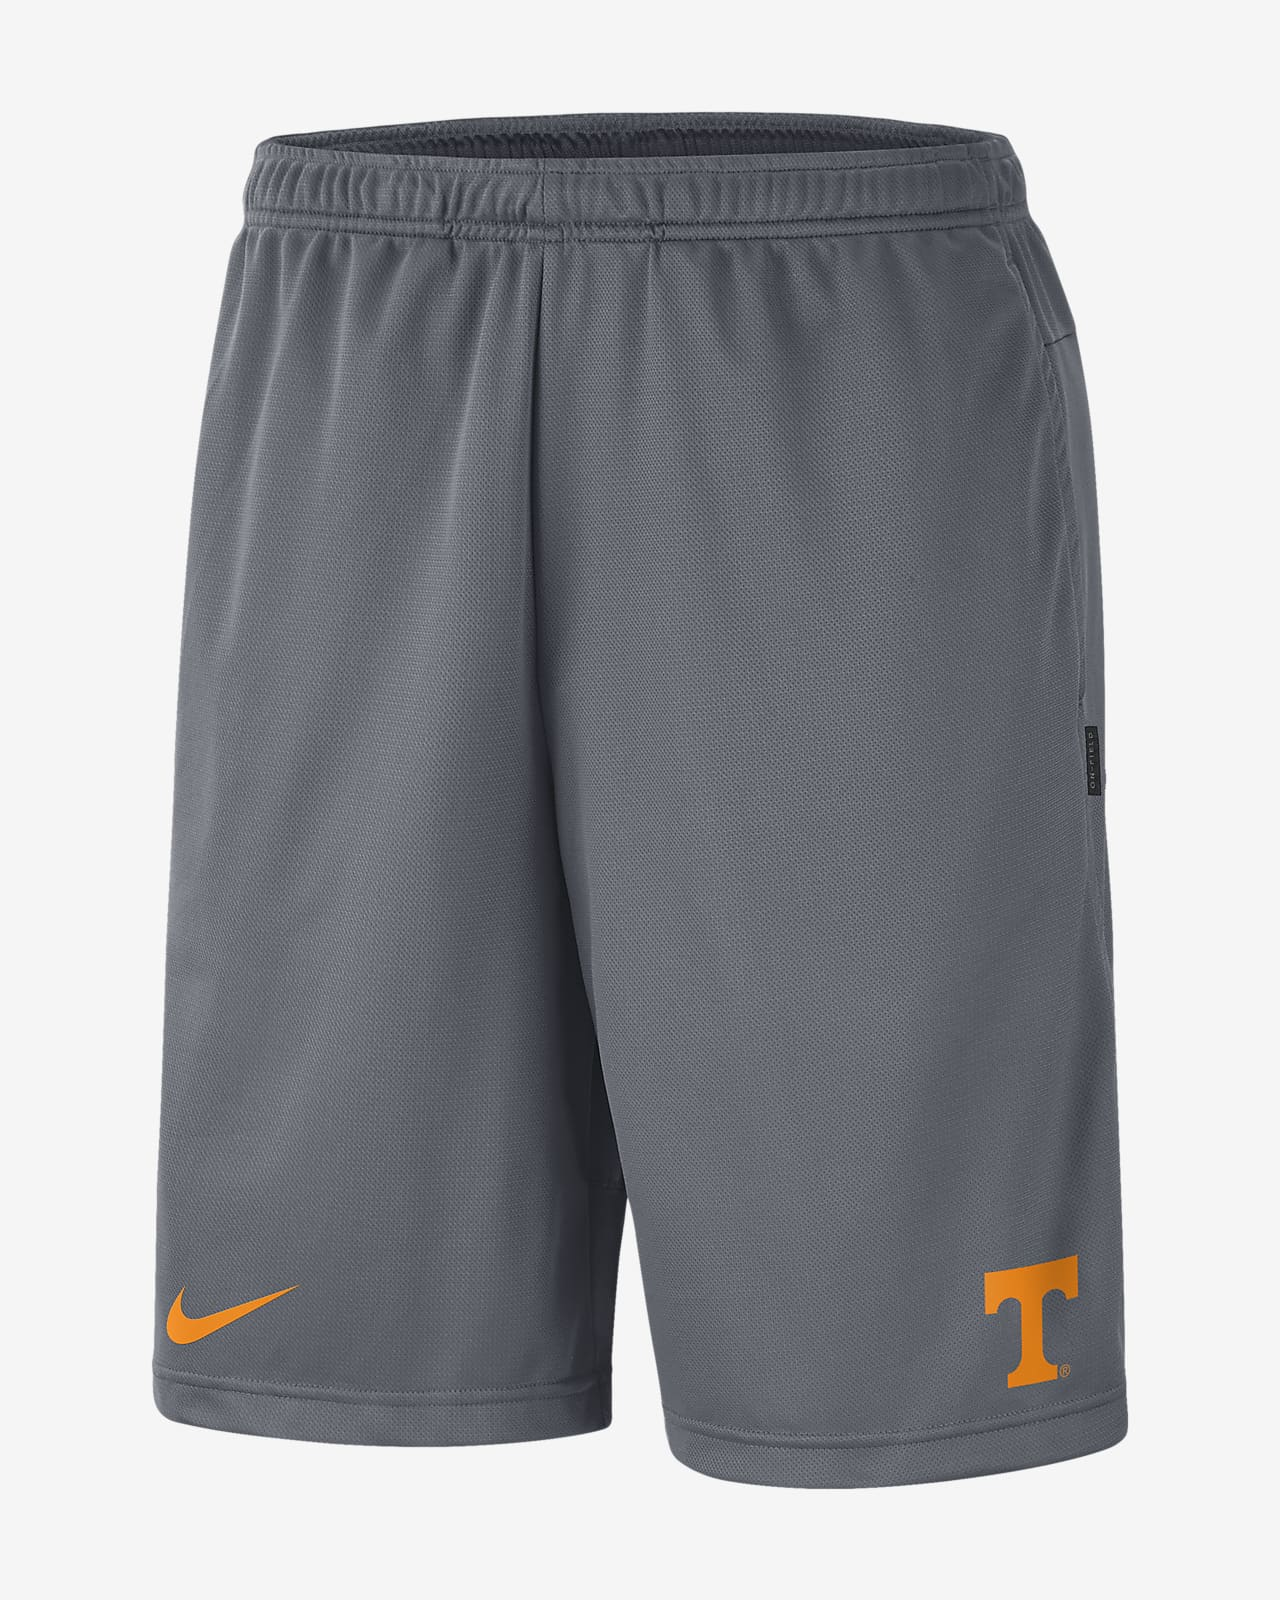 Nike College Dri-FIT Coach (Tennessee) Men's Shorts